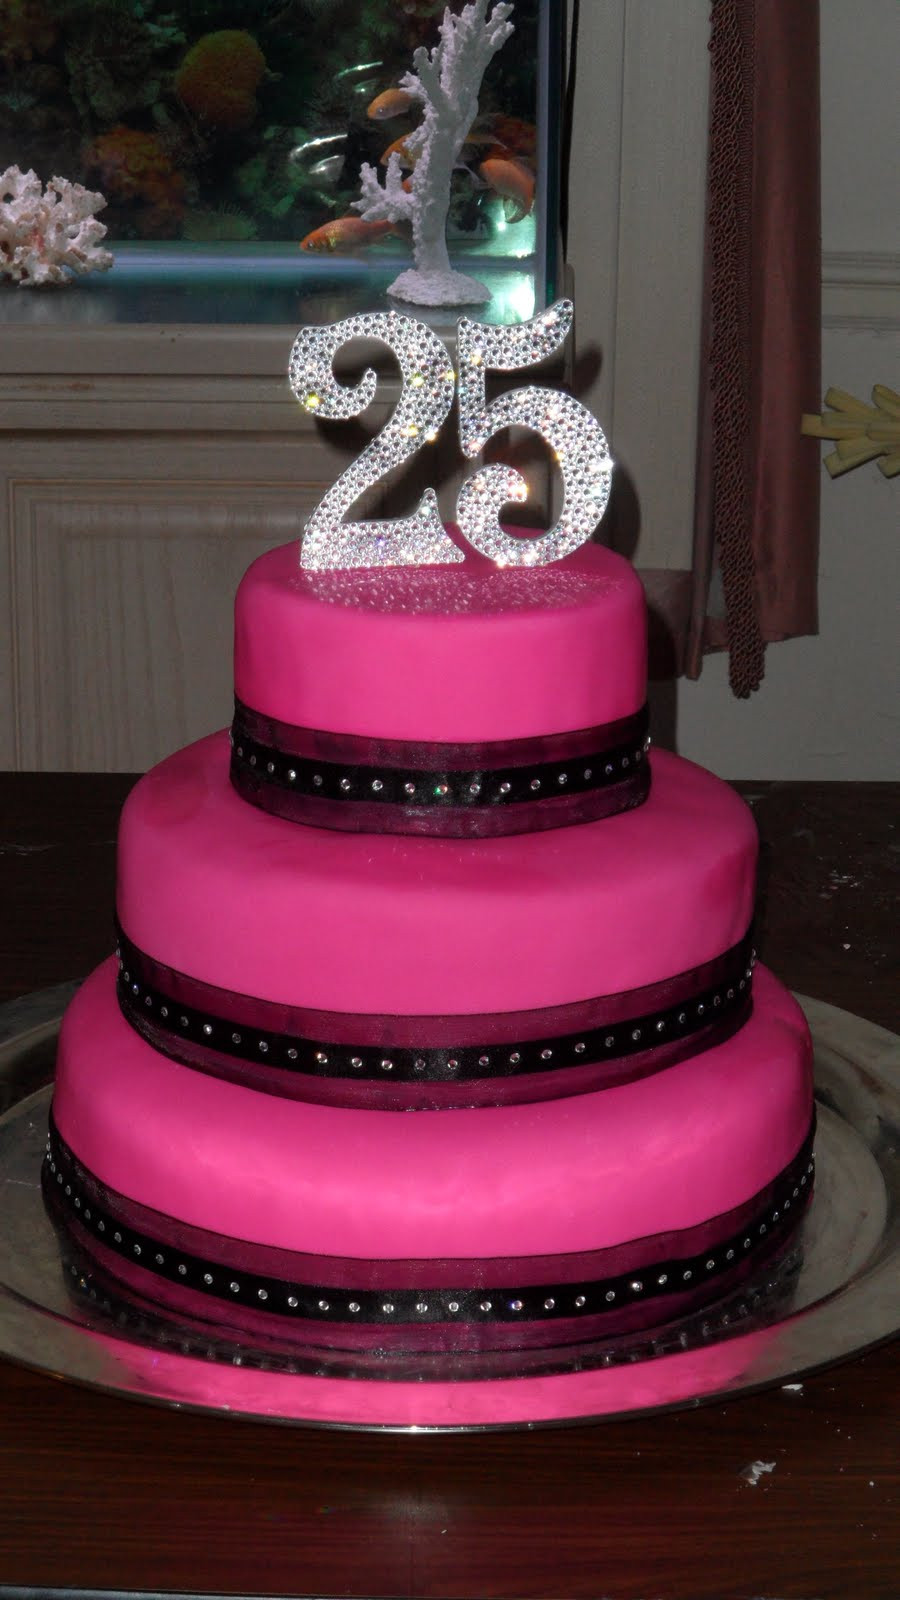 Best ideas about 25 Birthday Cake . Save or Pin DREAM OF SWEETS Now.